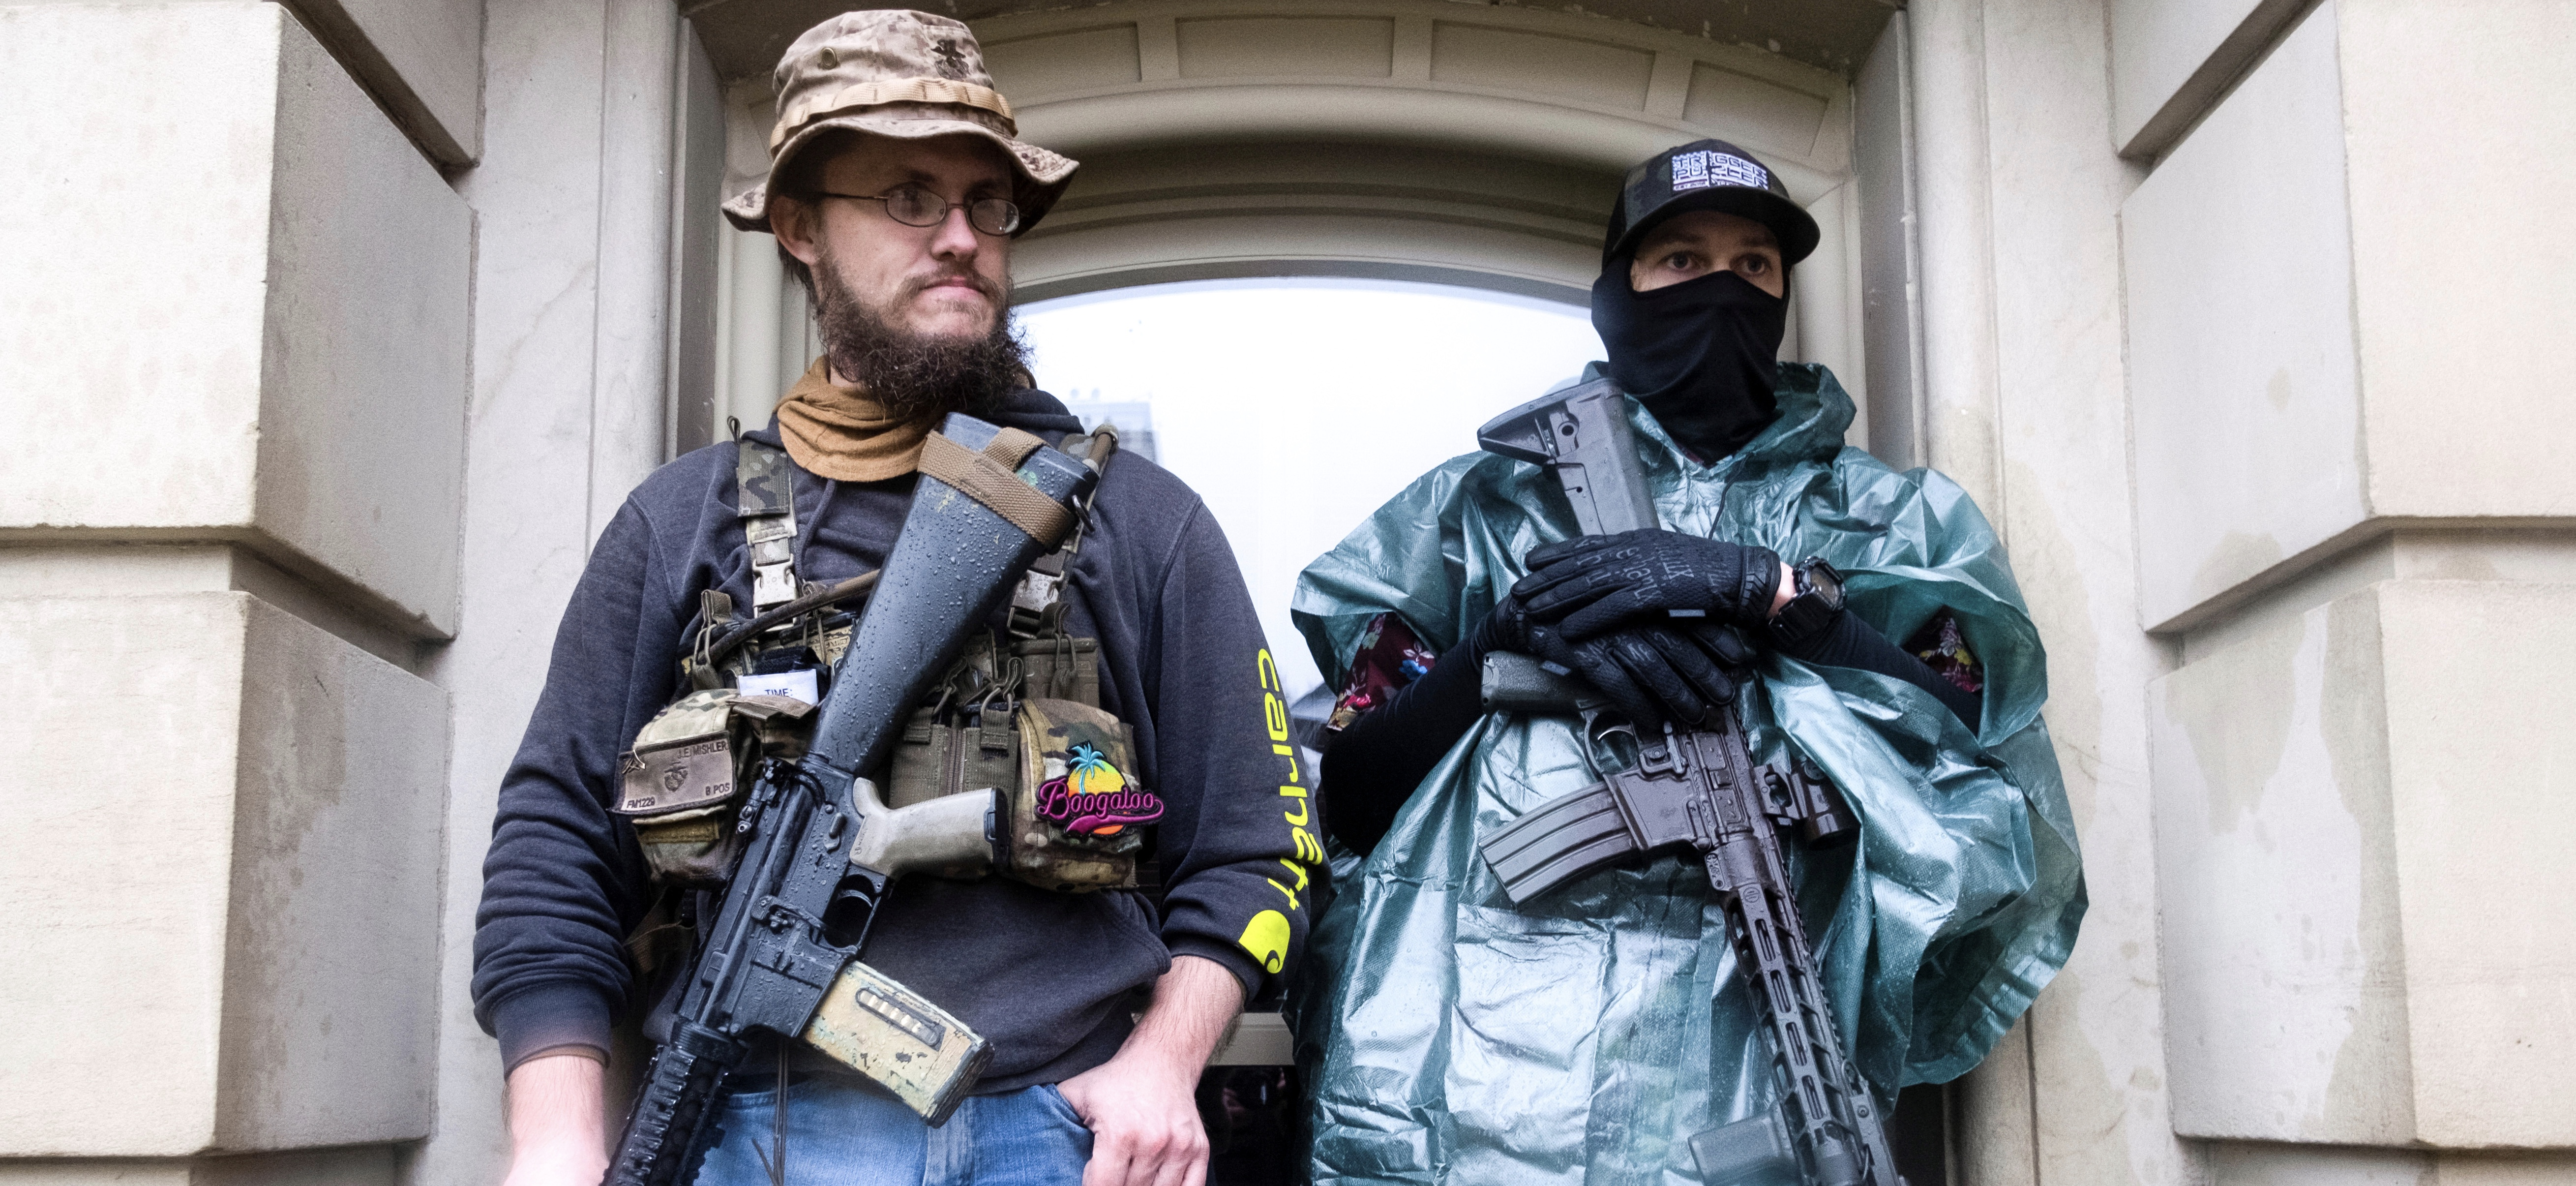 Protesters with long guns shelter from the heavy rain during a protest against Governor Gretchen Whitmer's extended stay-at-home orders intended to slow the spread of the coronavirus disease (COVID-19) at the Capitol building in Lansing, Michigan, U.S. May 14, 2020. REUTERS/Seth Herald